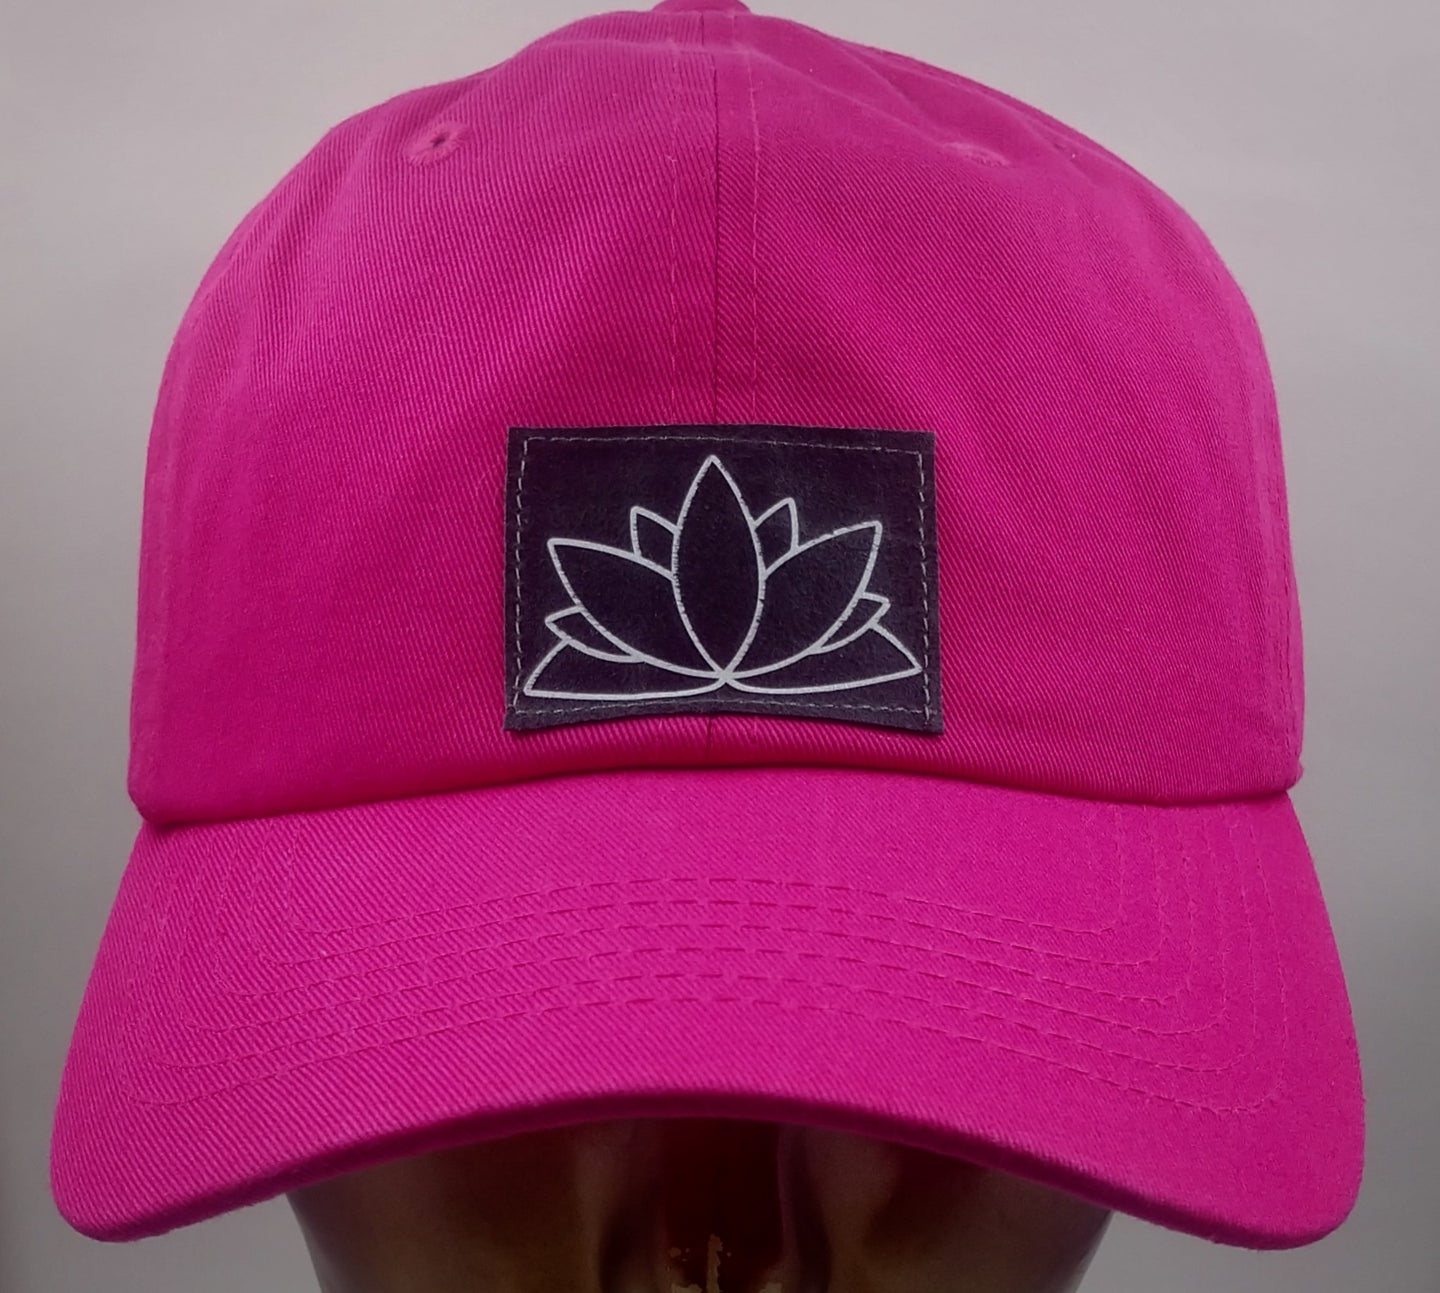 Buddha gear Buddha lids Hot pink dad hat with handmade lotus patch  The lotus has long been regarded as sacred by many of the world's religions, especially in India and Egypt, where it is held to be a symbol of the Universe itself. Rooted in the mud, the lotus rises to blossom clean and bright, symbolizing purity and resurrection  In Buddhist symbolism the lotus is symbolic of purity of the body, speech, and mind while rooted in the mud, its flowers blossom on long stalks as if floating above the muddy wate